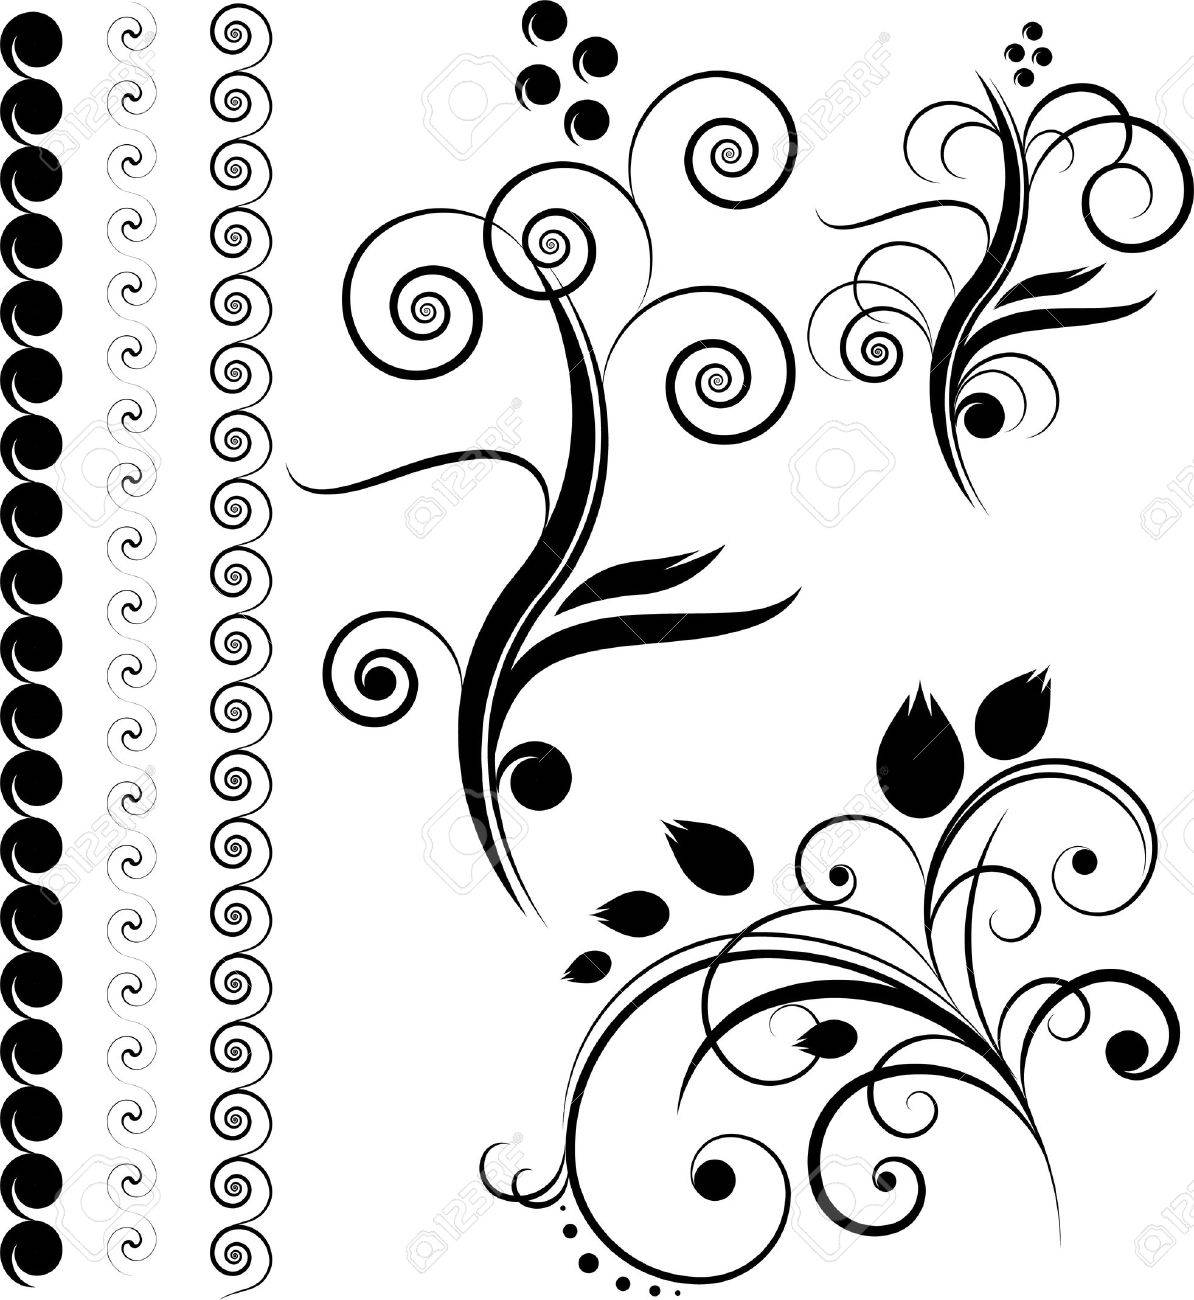 Borders Floral Design Elements Isolated On The White Royalty